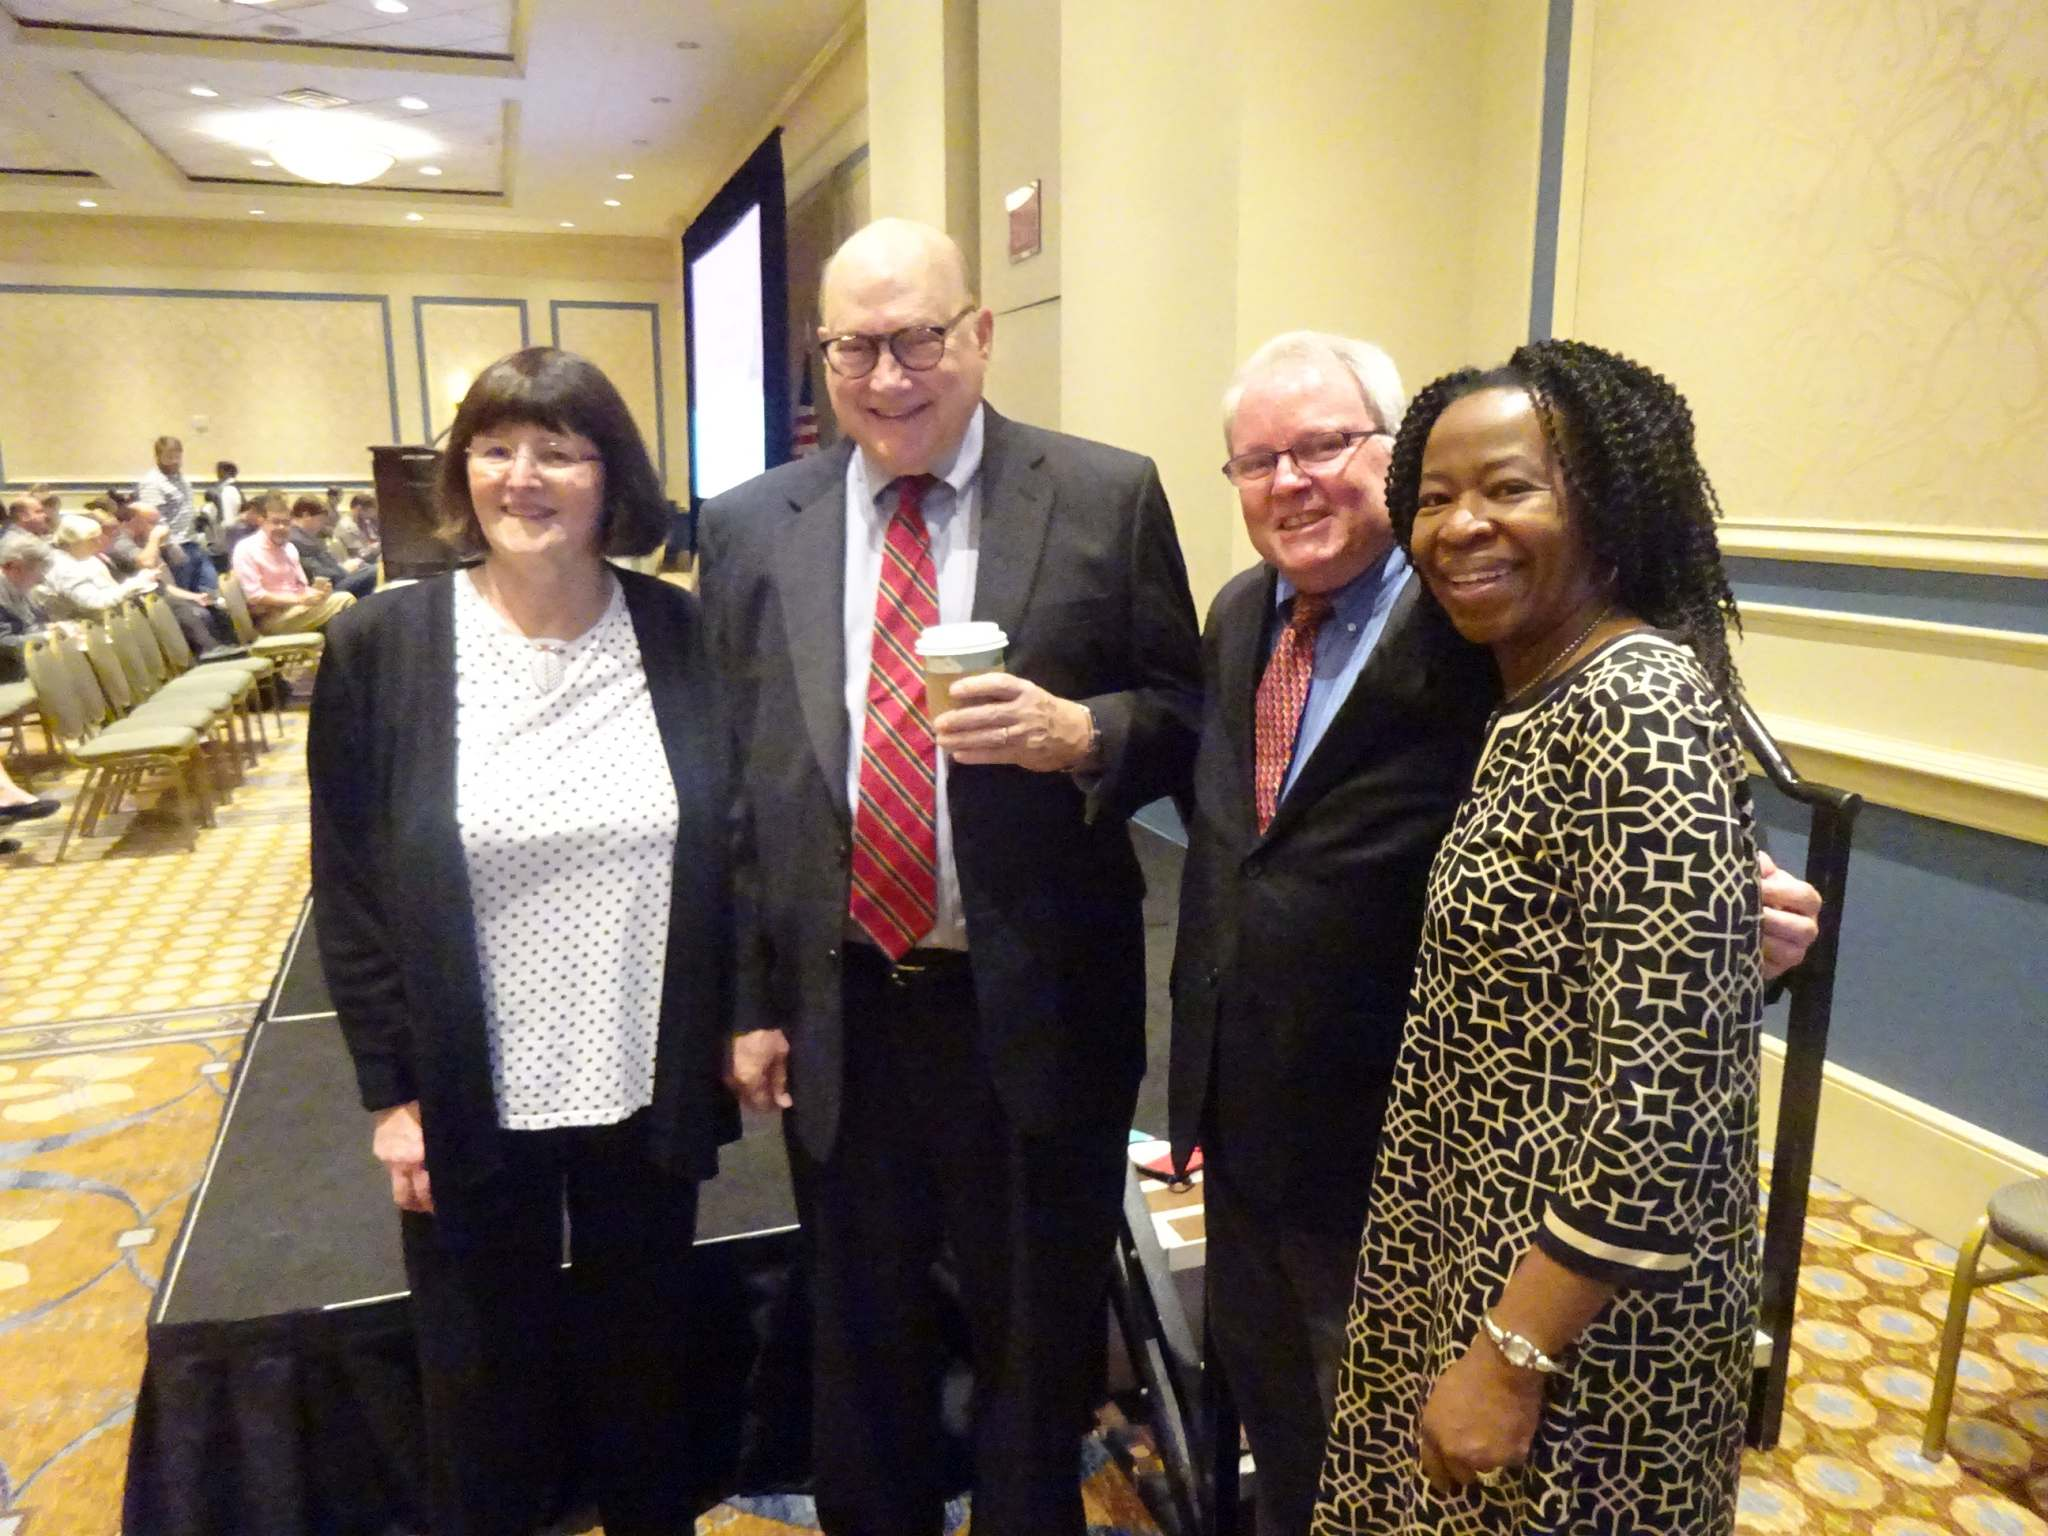 Ann Okerson, Bill Hannay, Kenneth Crews, Ruth Okedji